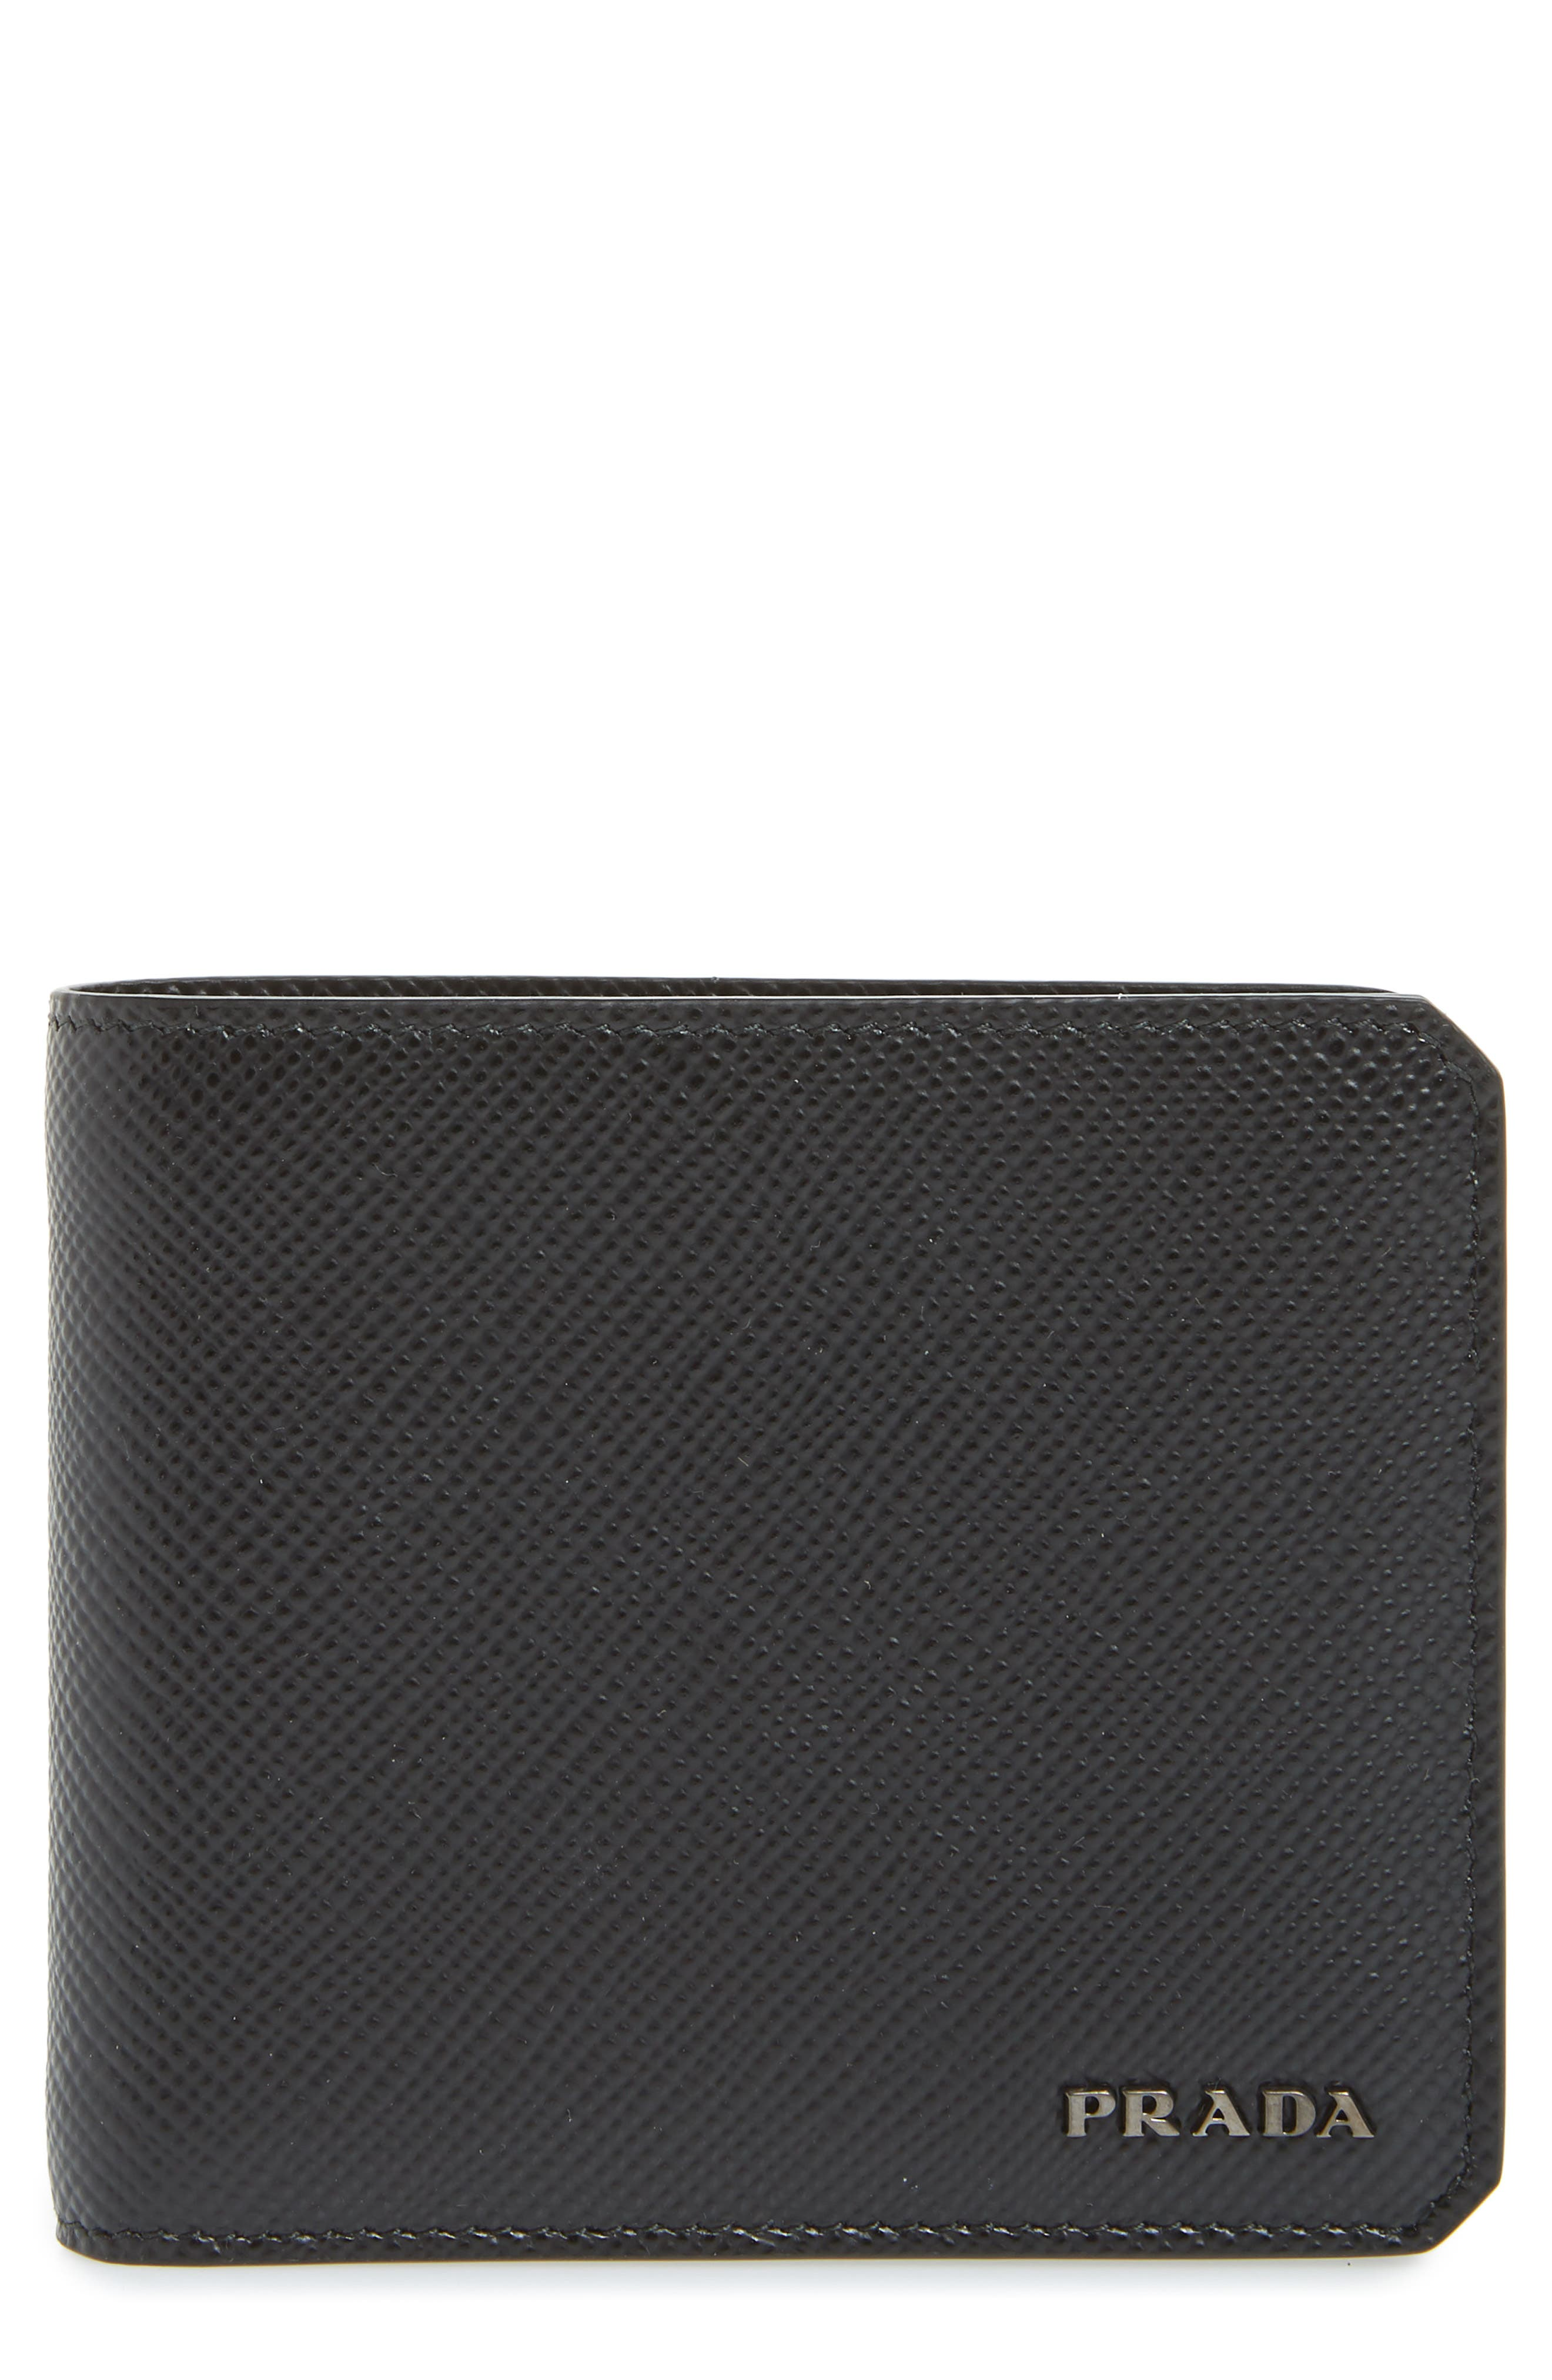 Saffiano Leather Wallet,                         Main,                         color, 001